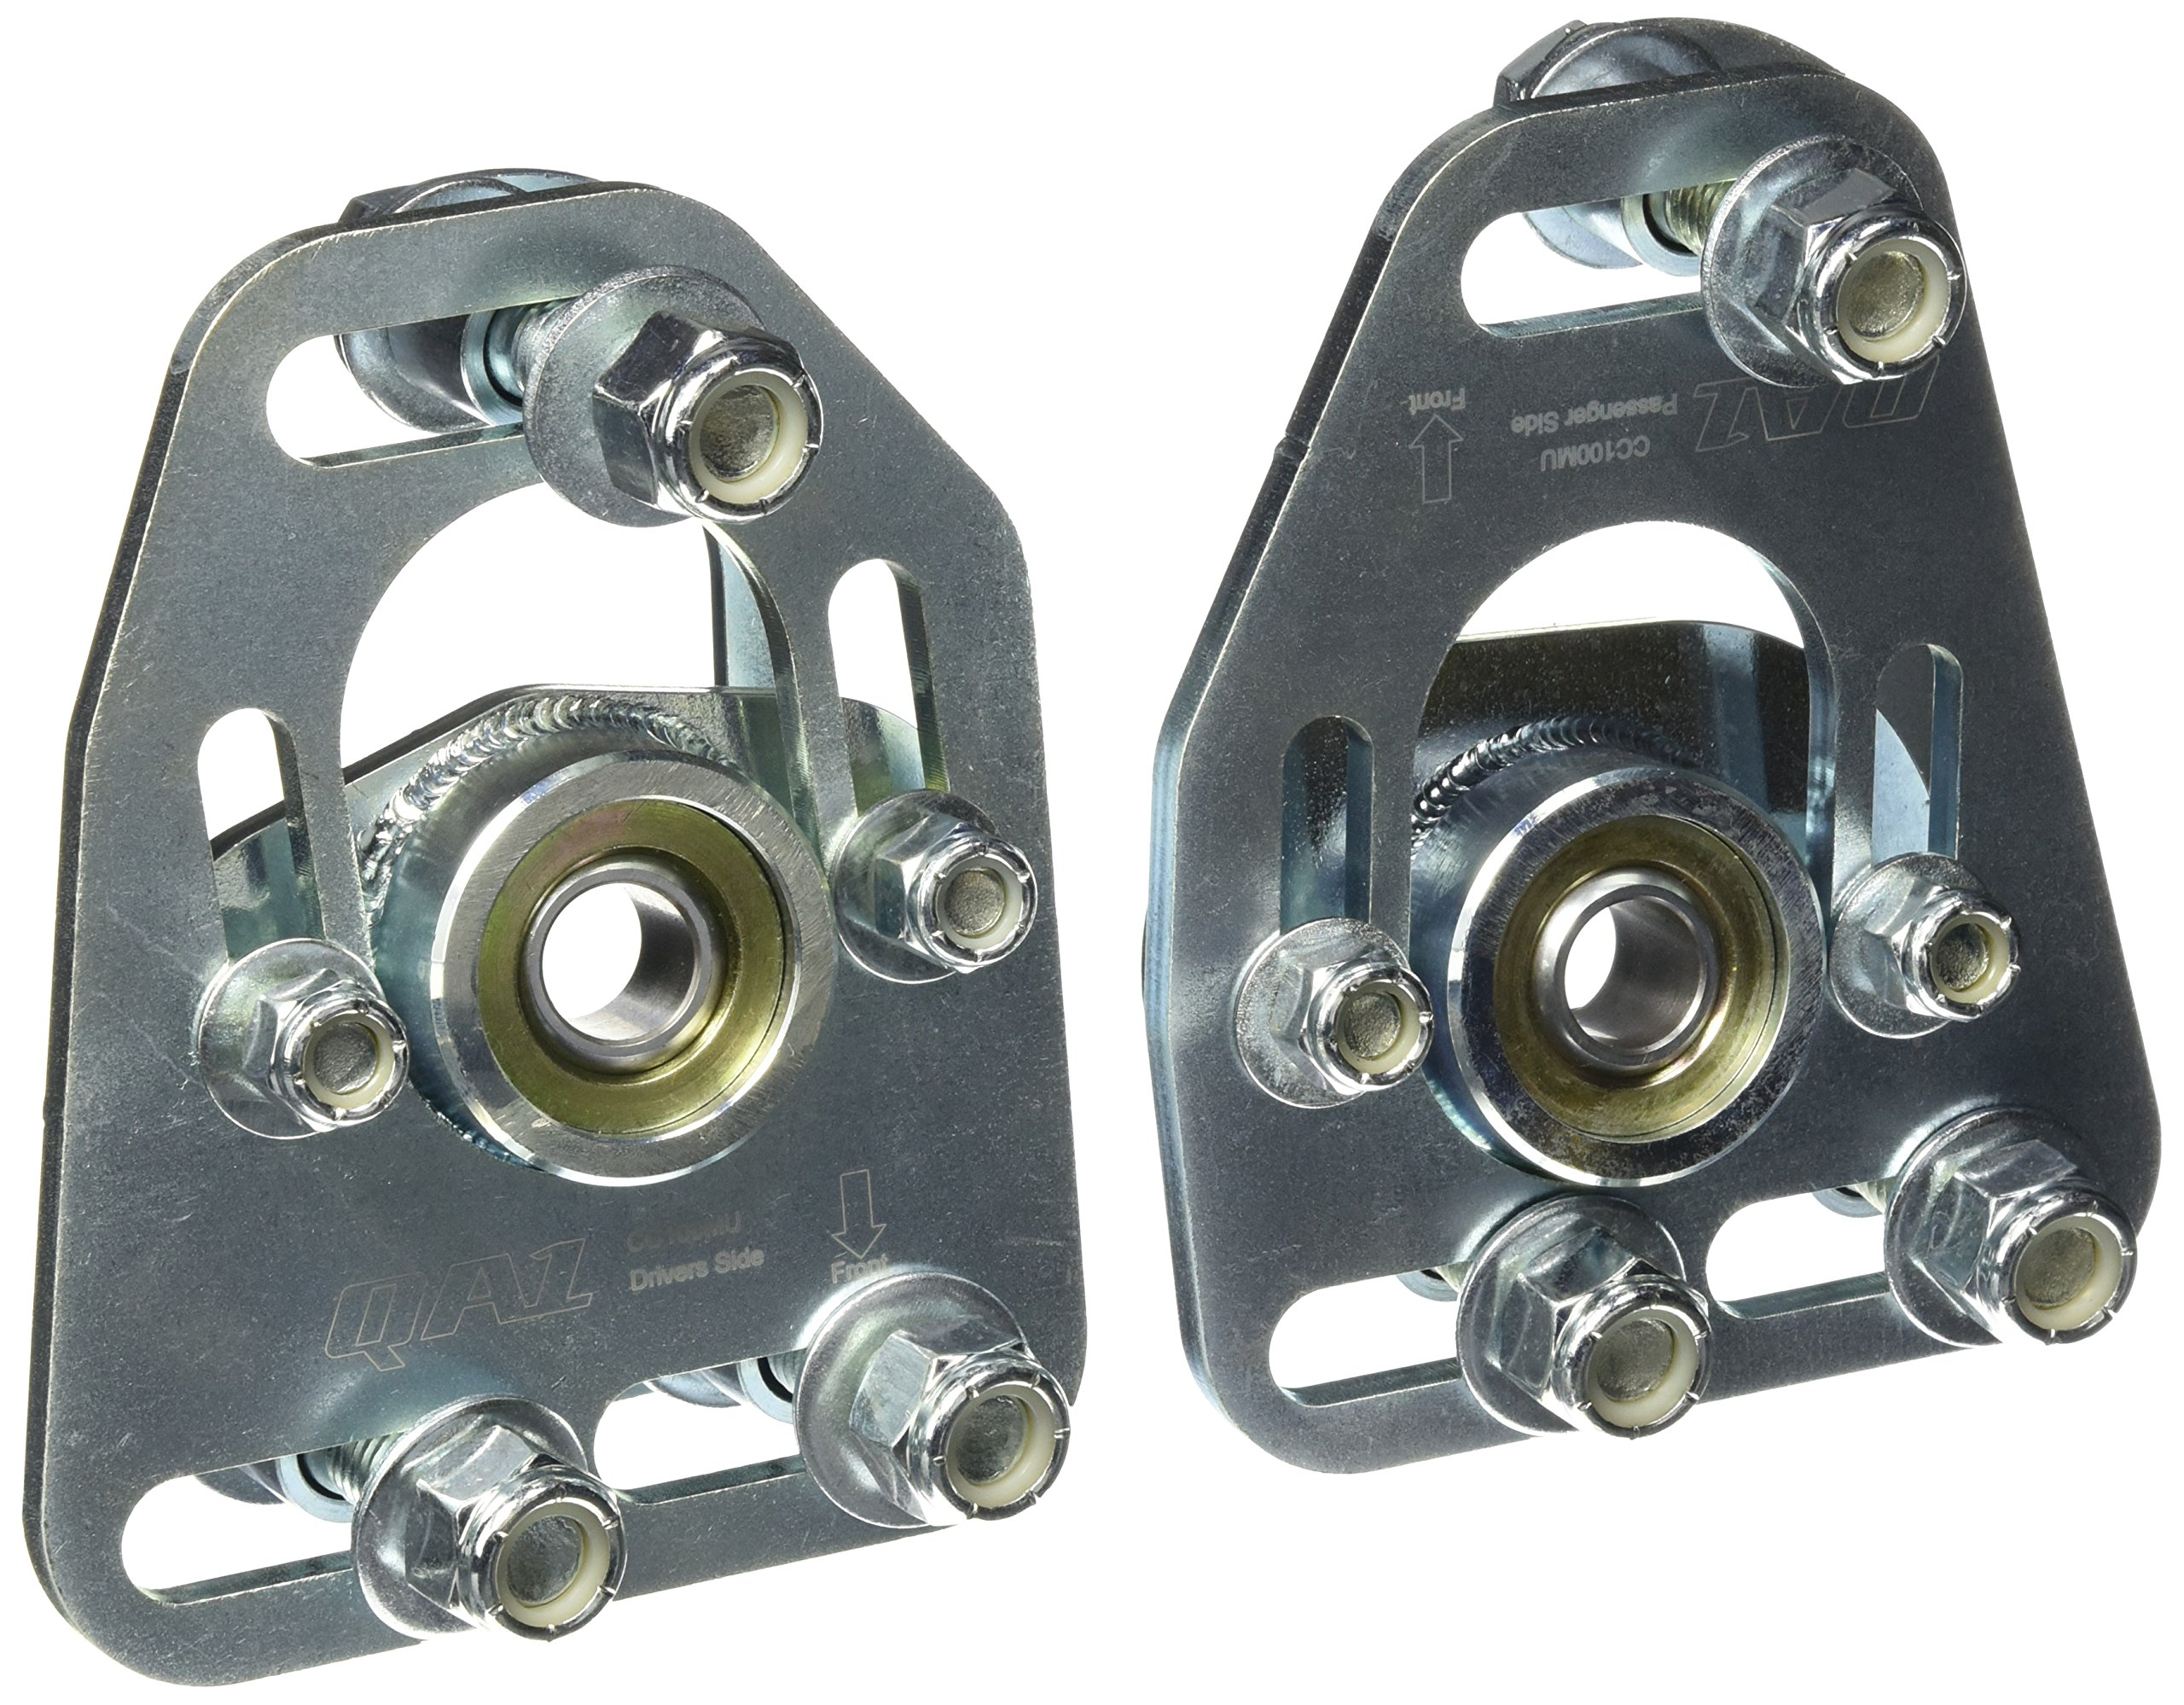 QA1 CC100MU Caster/Camber Plate for Mustang by QA1 (Image #1)